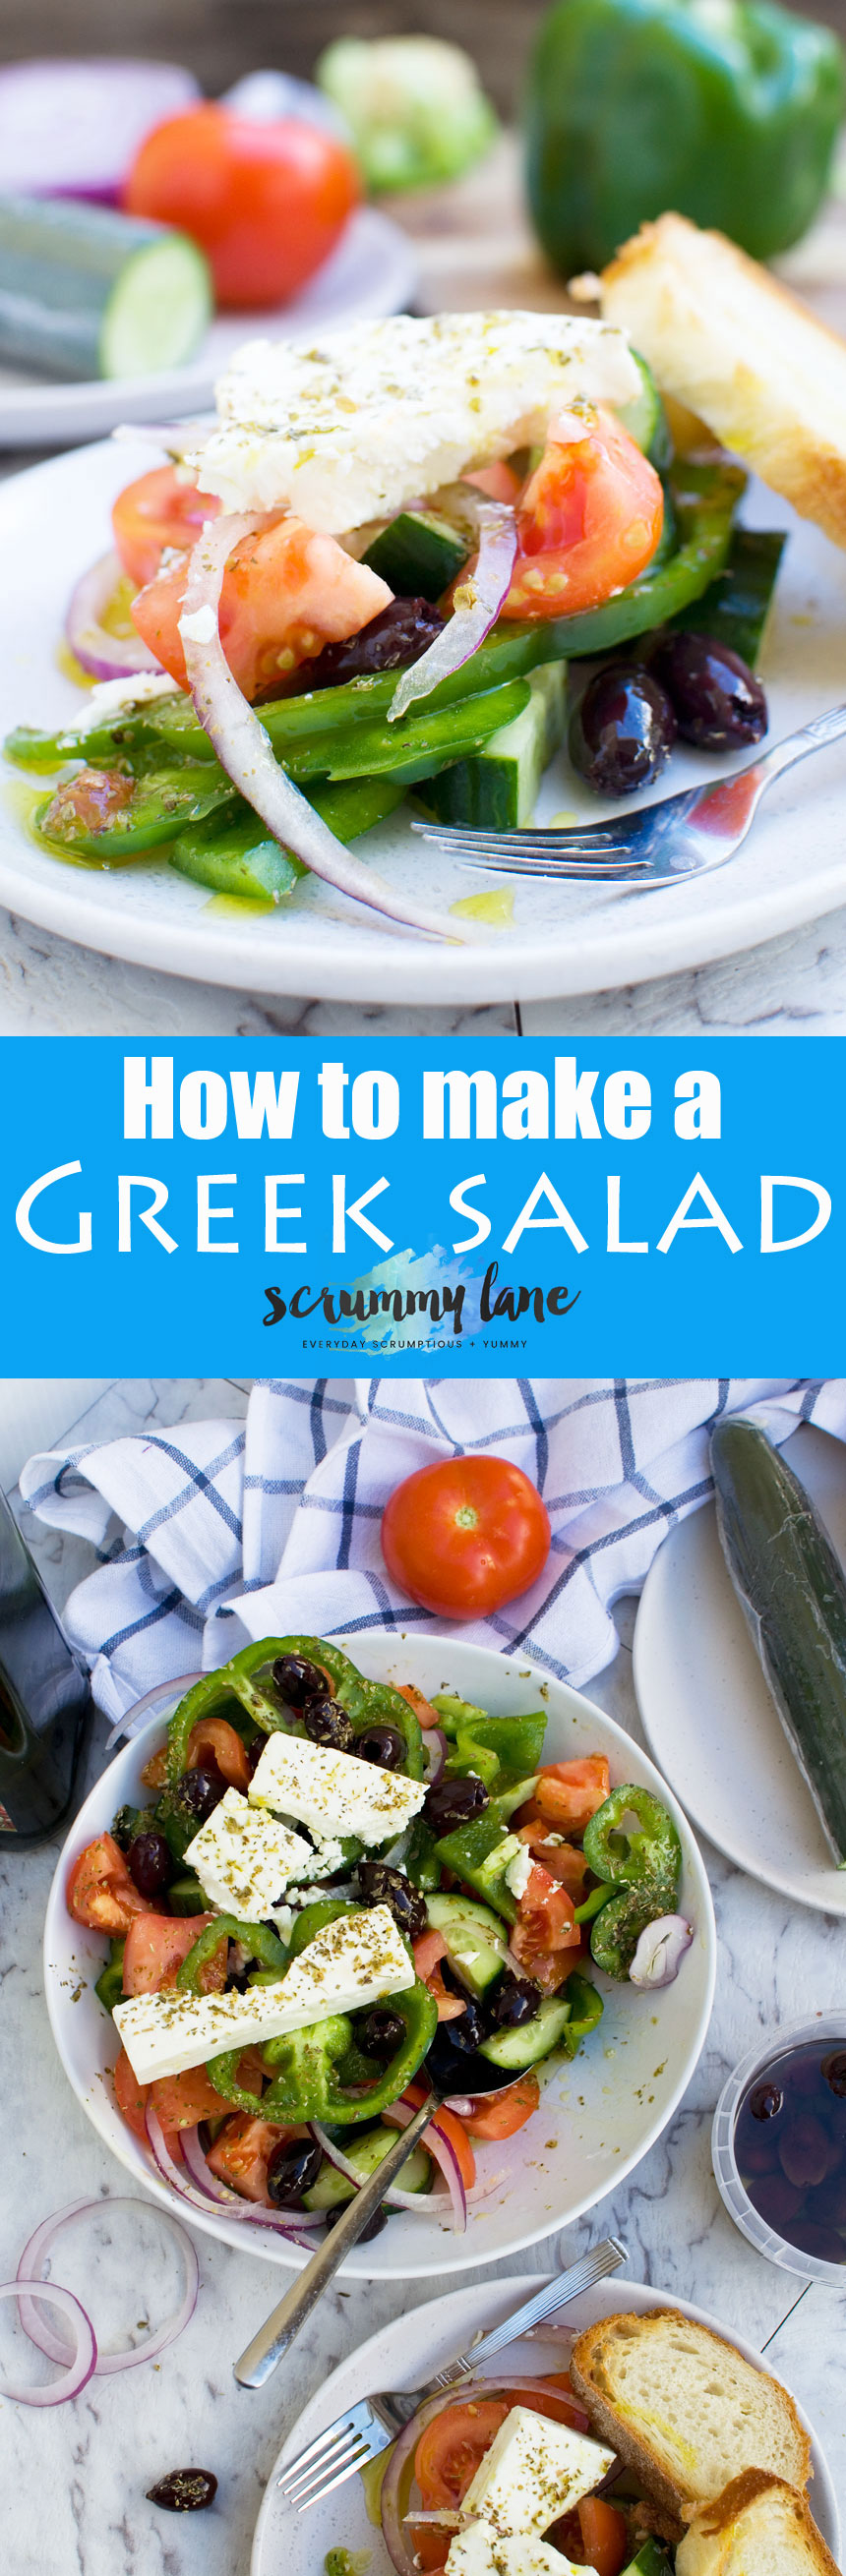 How to make a Greek salad. You might know how to make this delicious salad, but do you really?